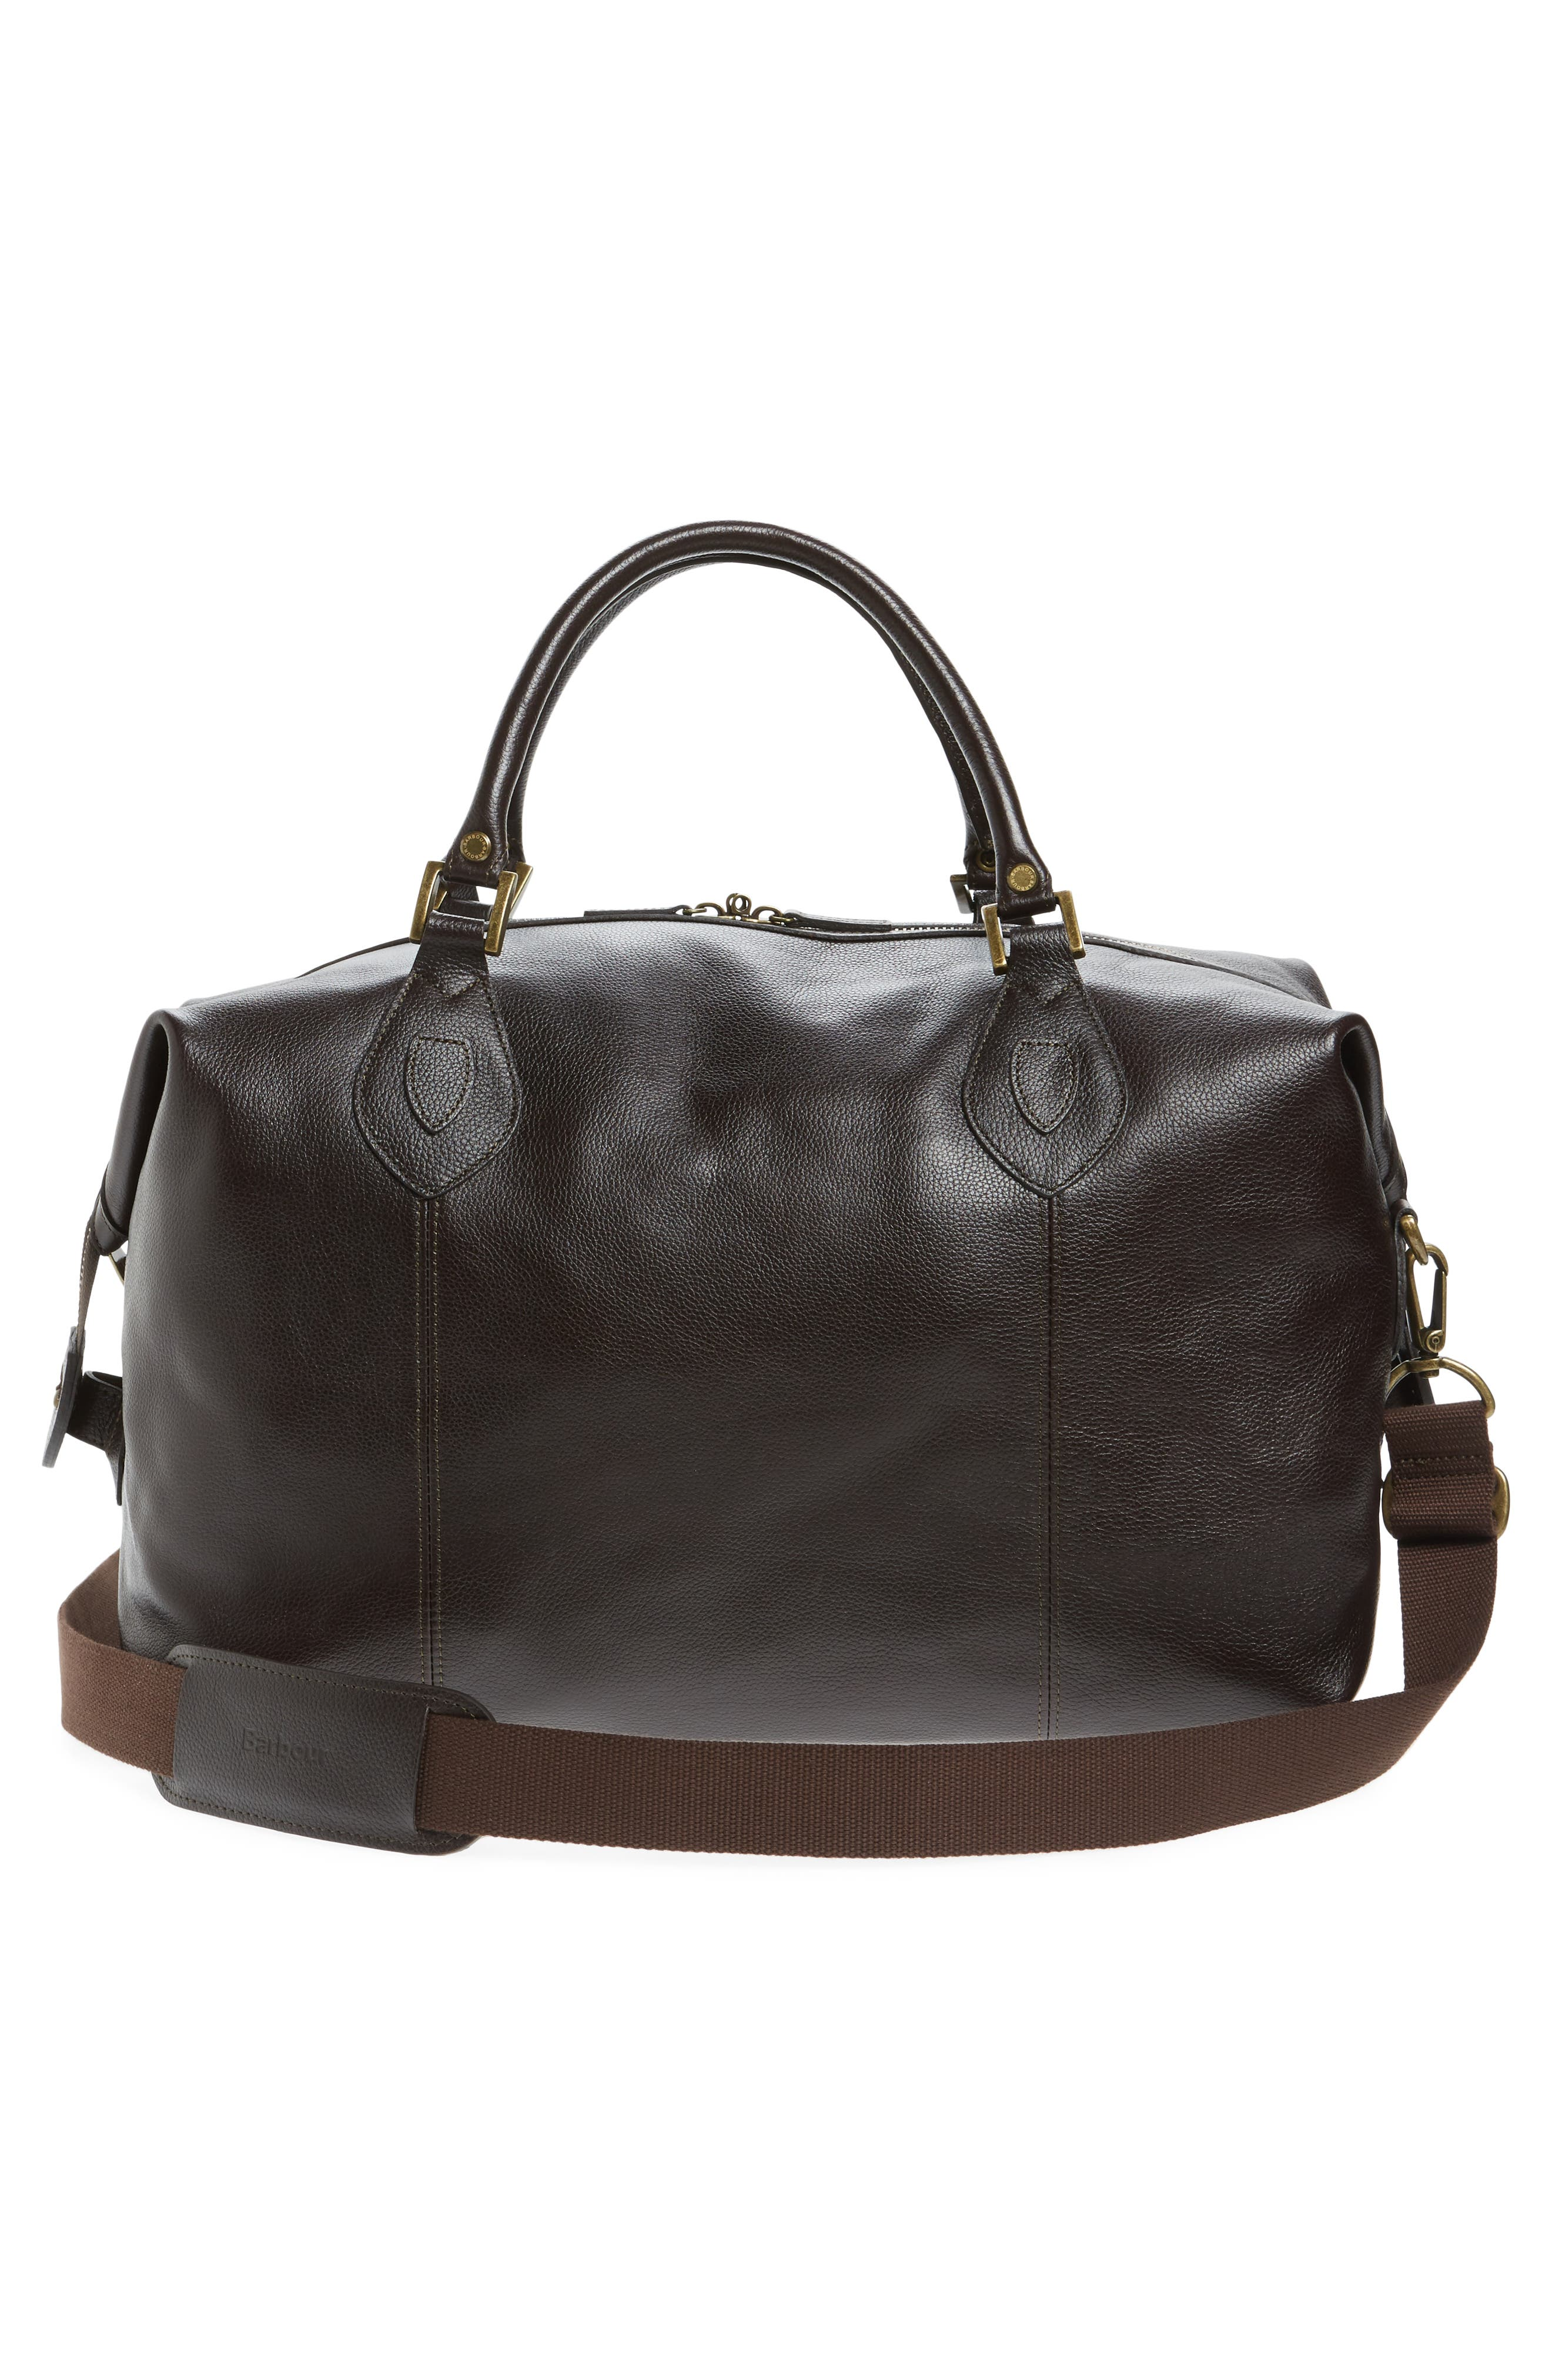 BARBOUR, Leather Travel Bag, Alternate thumbnail 3, color, CHOCOLATE